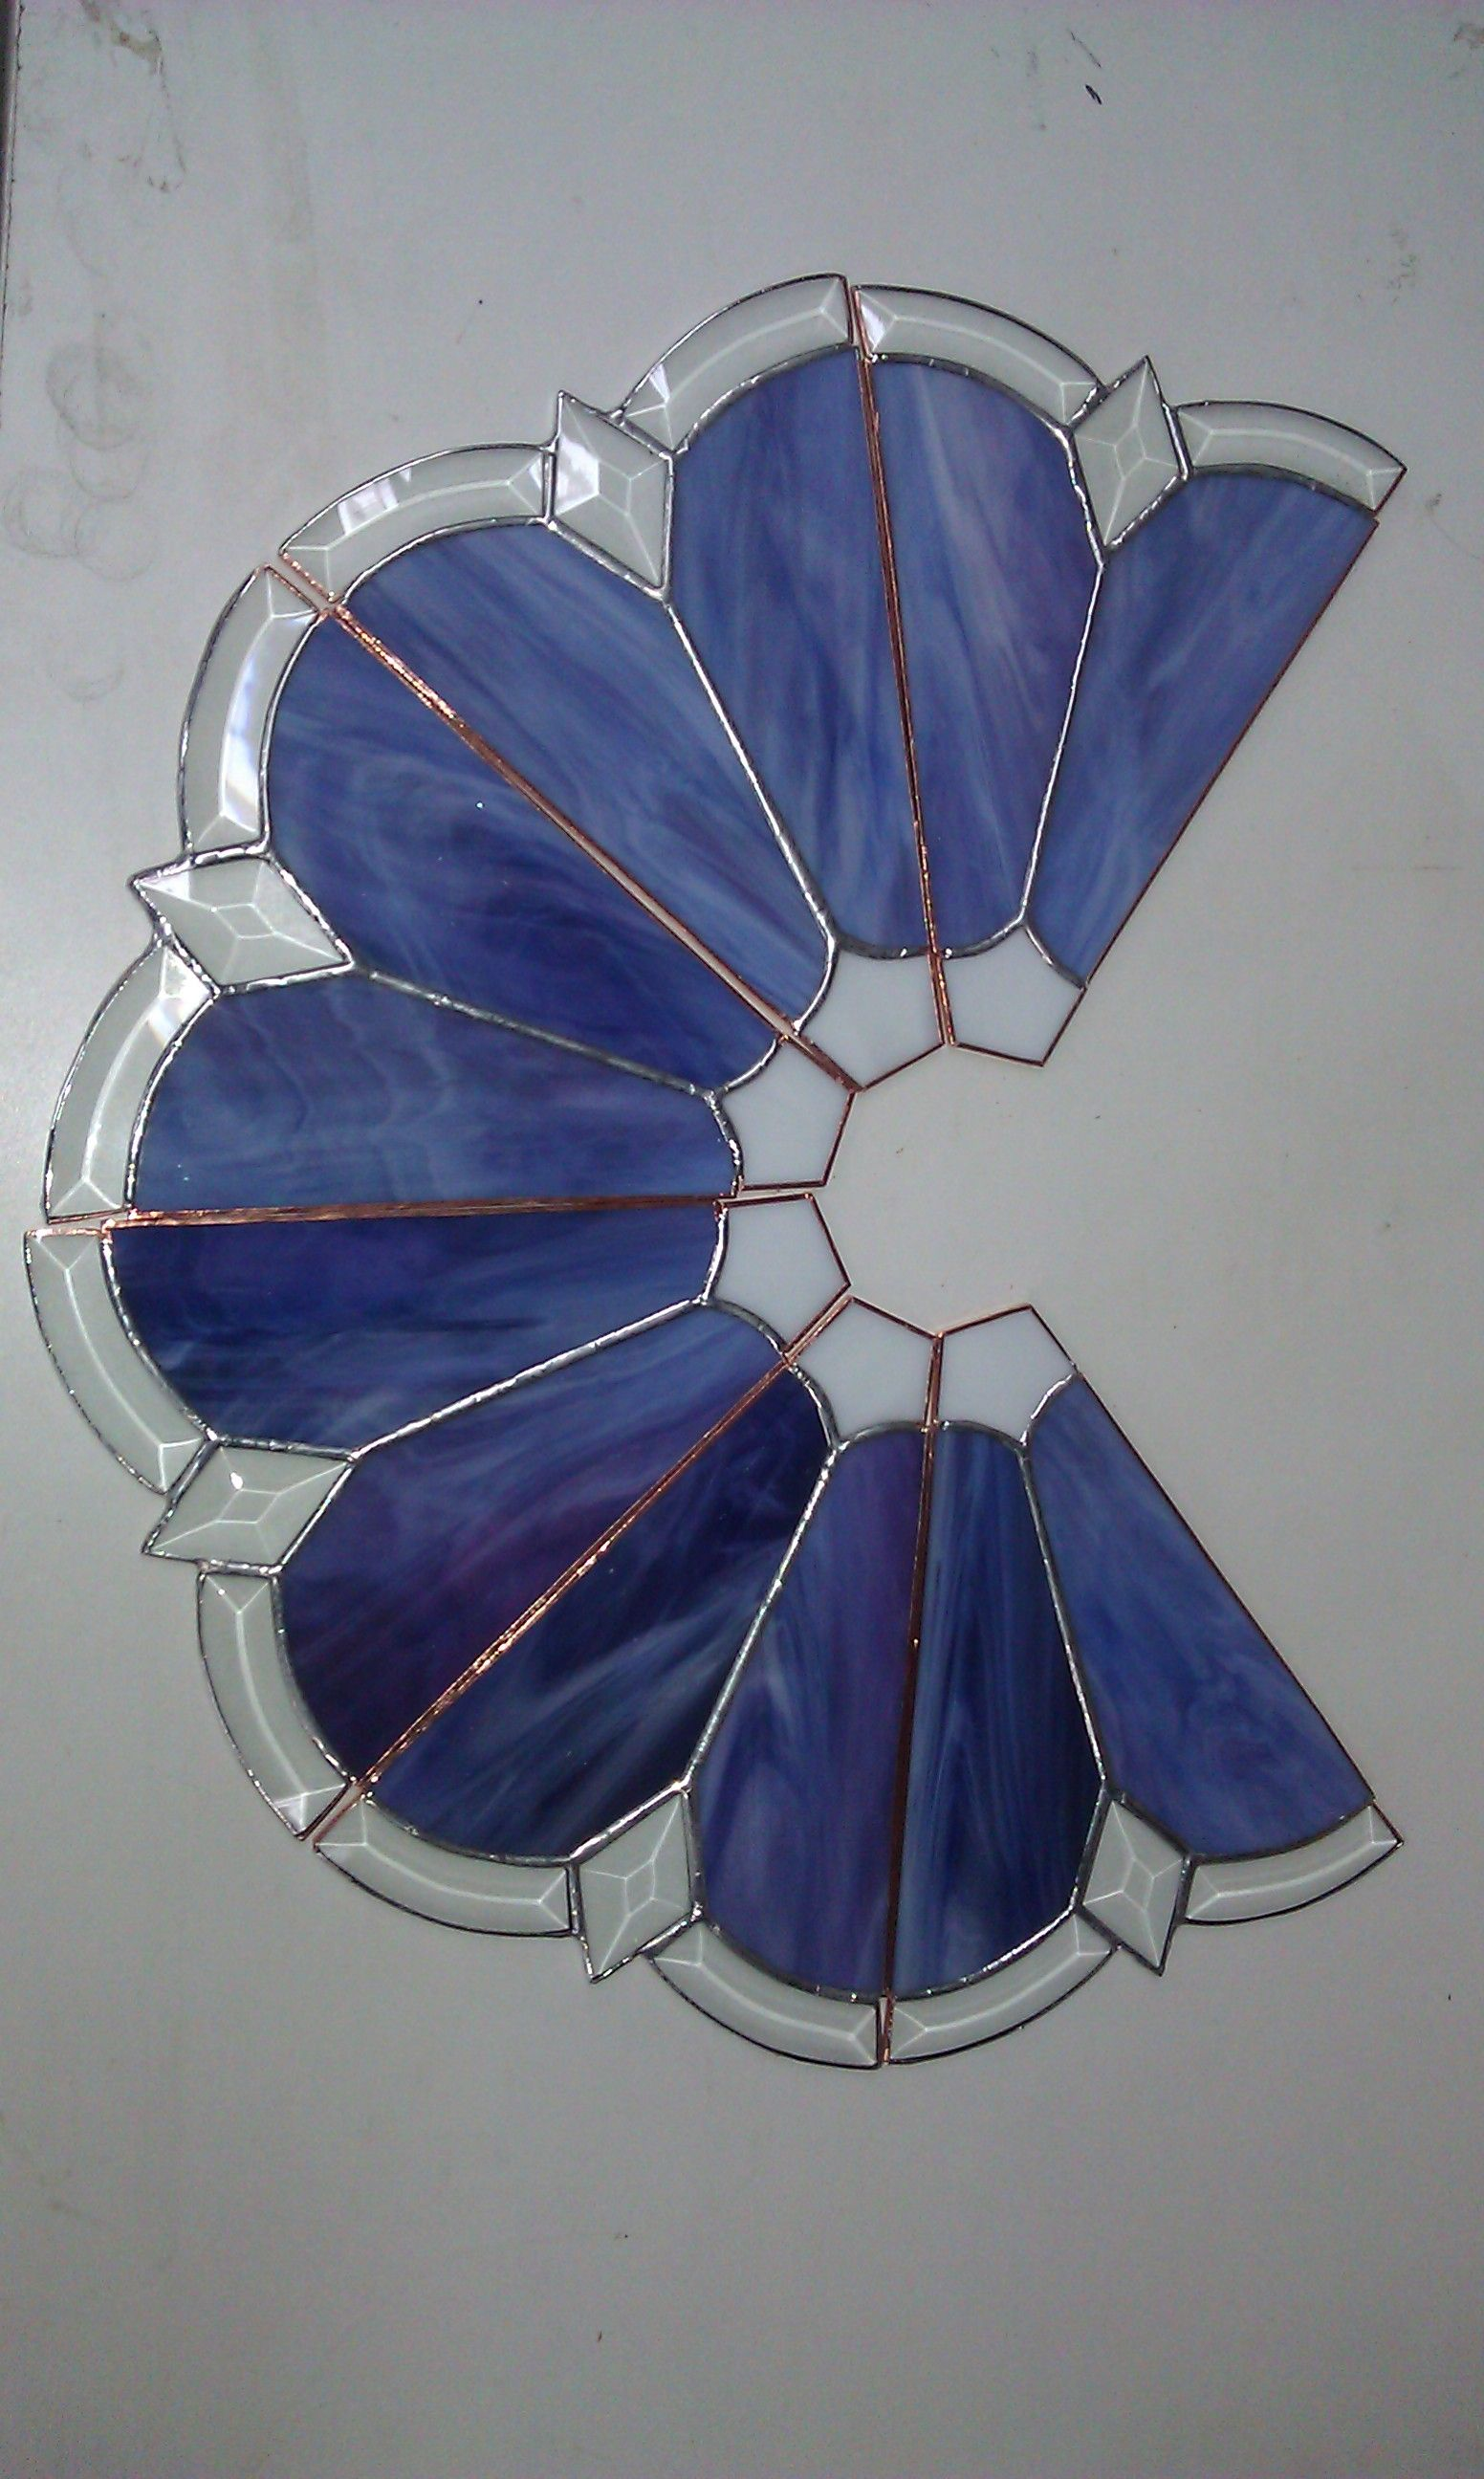 A Work In Progress Shade Of Lamp Stained Glass Candles Stained Glass Lamp Shades Stained Glass Candle Holders